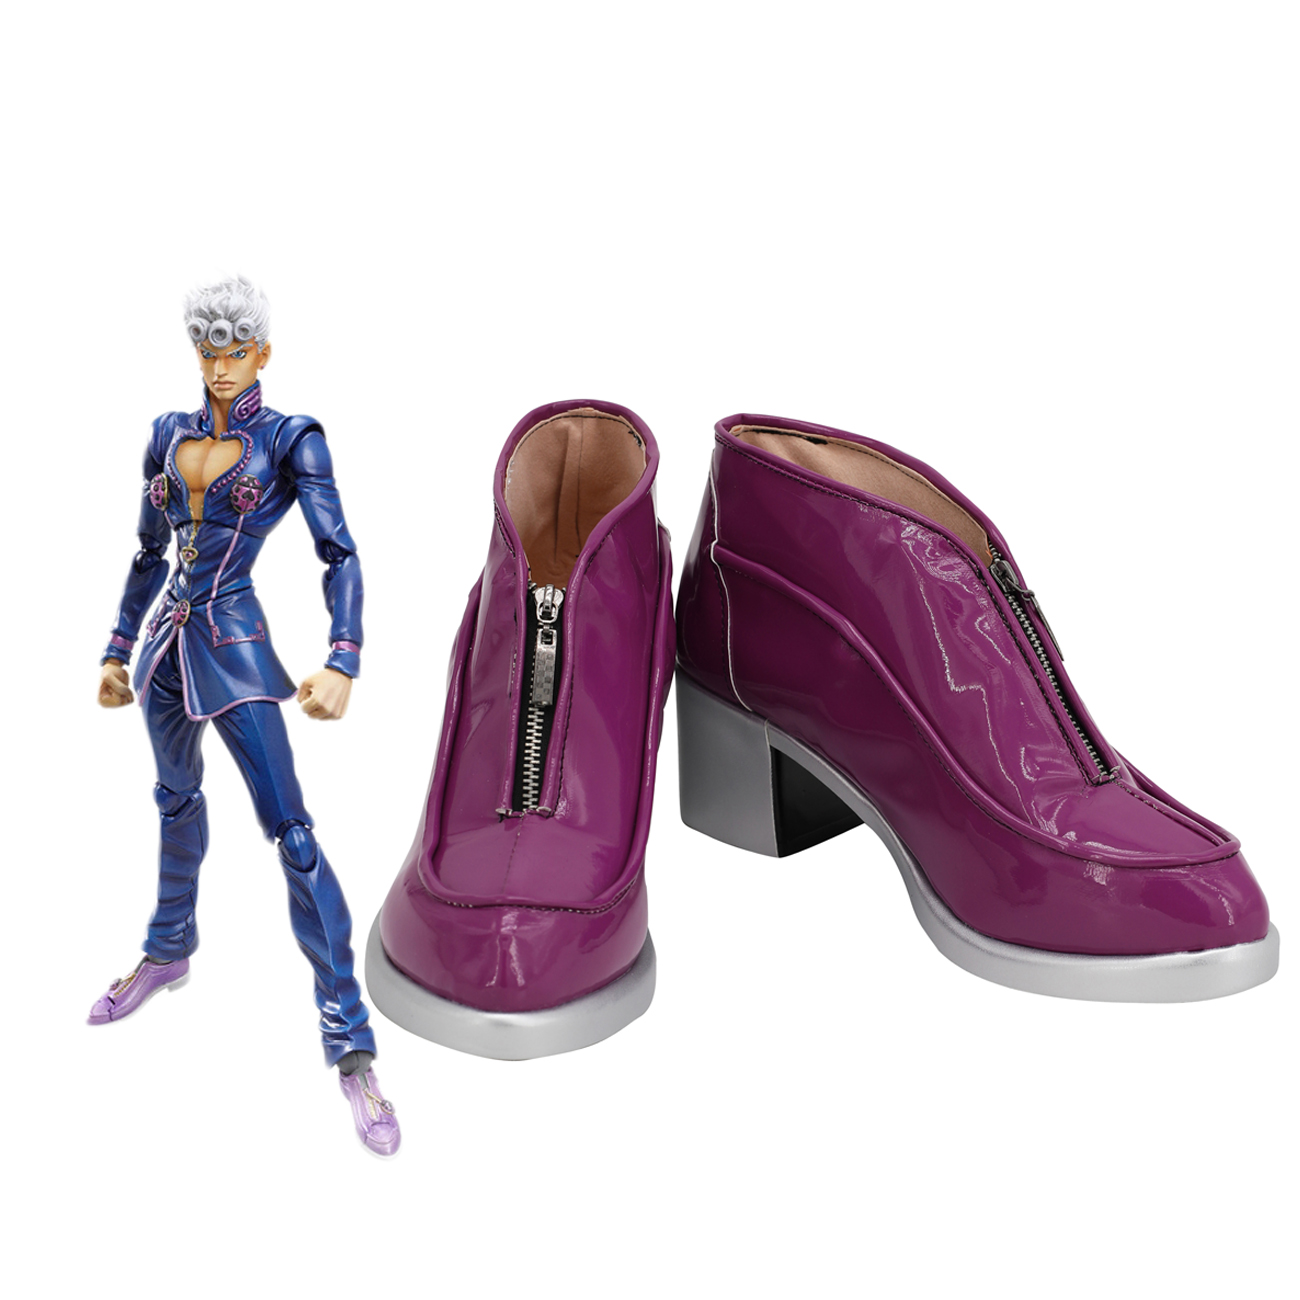 JoJo's Bizarre Adventure Giorno Giovanna Cosplay Shoes Purple Boots Custom Made Any Size